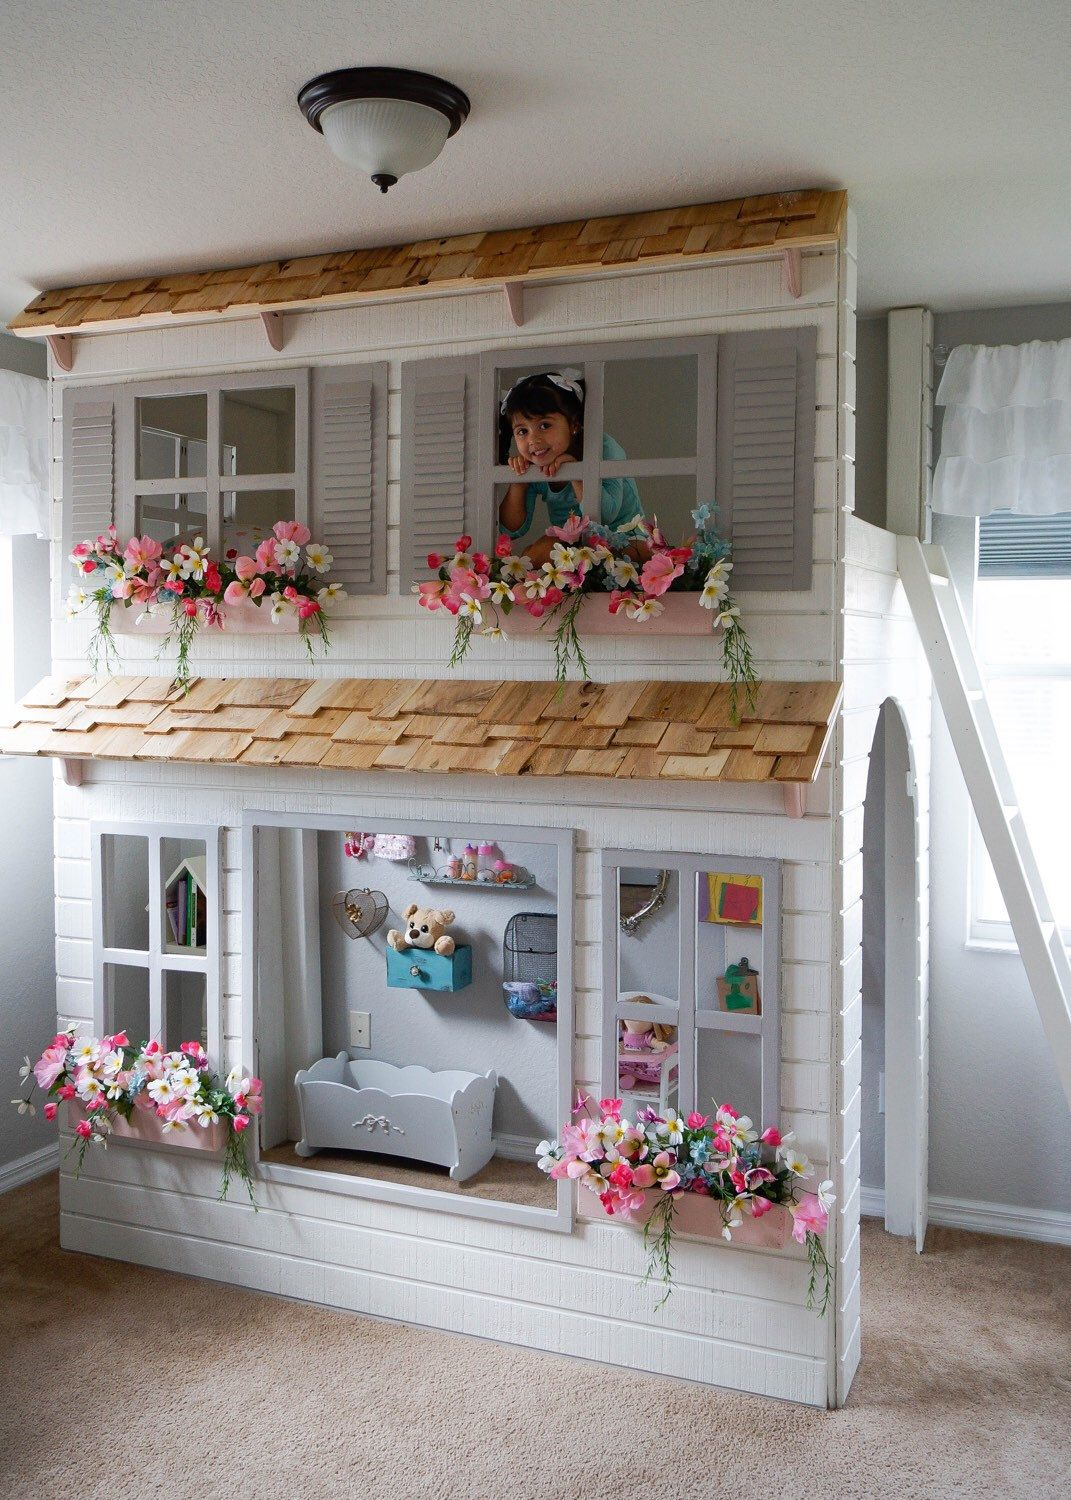 Loft bed storage stairs  Custom Dollhouse Cottage Loft Bed Pick Your Colors Play Area